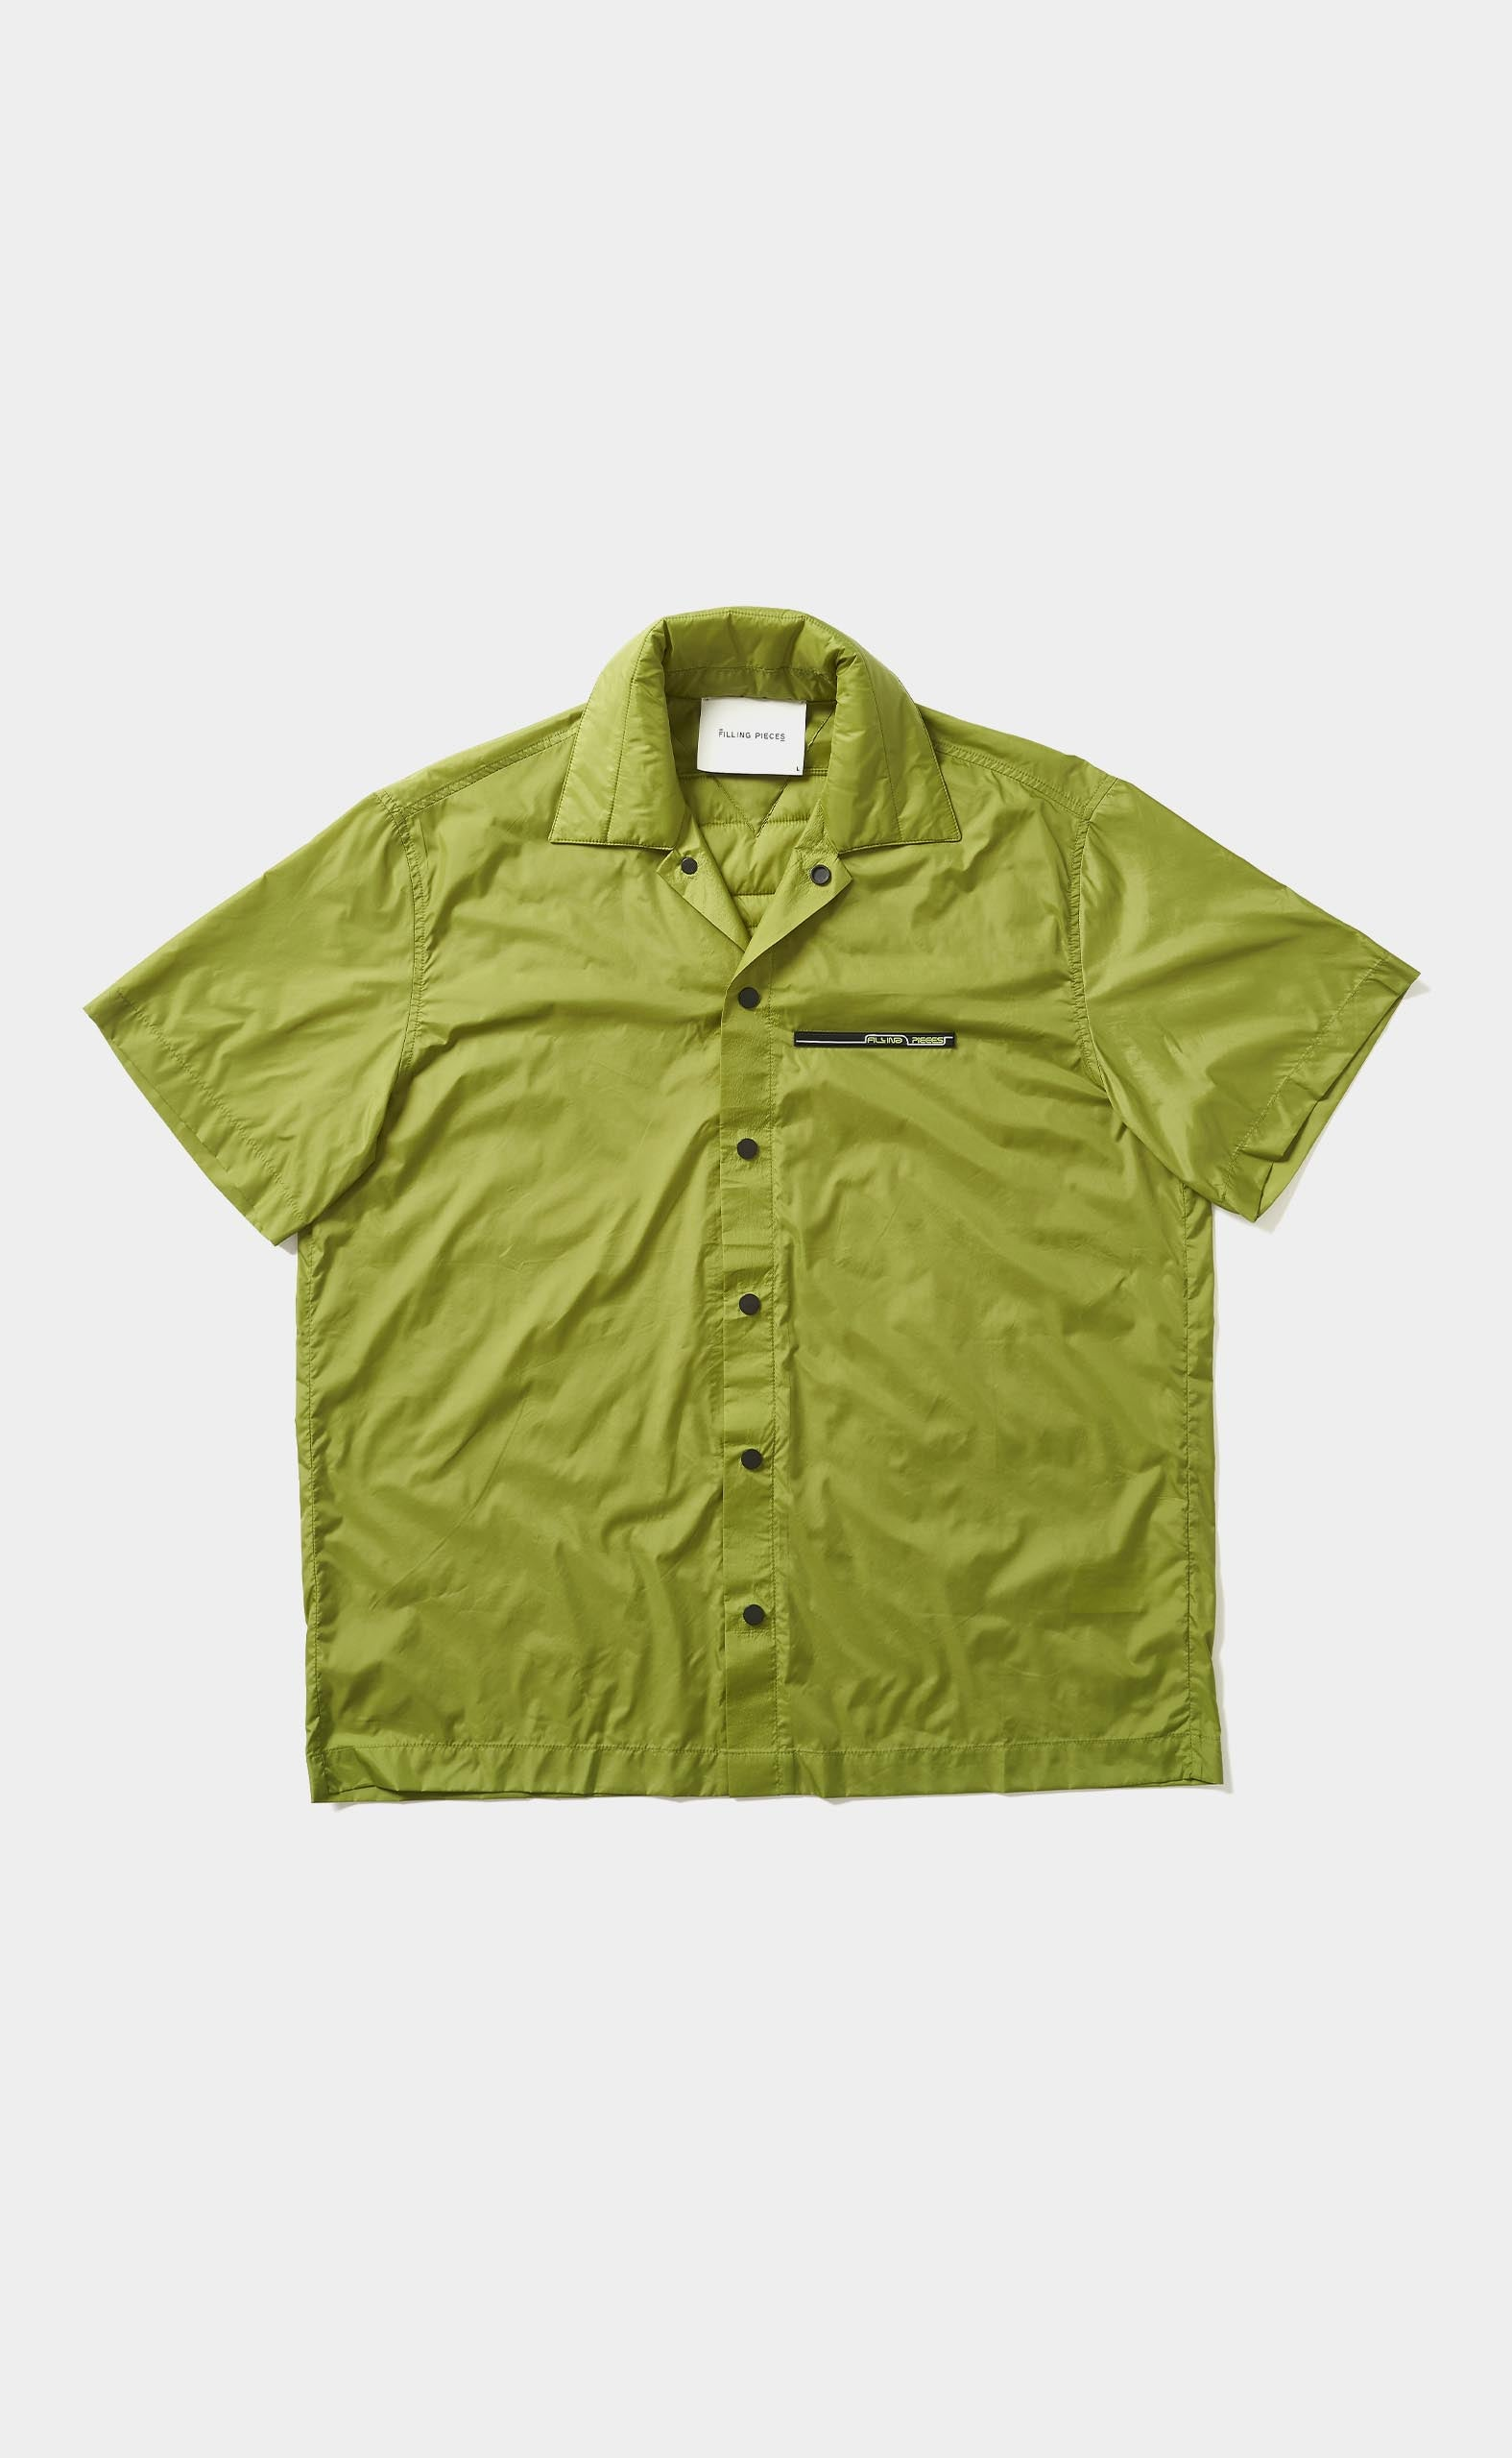 Padded Short Sleeve Green